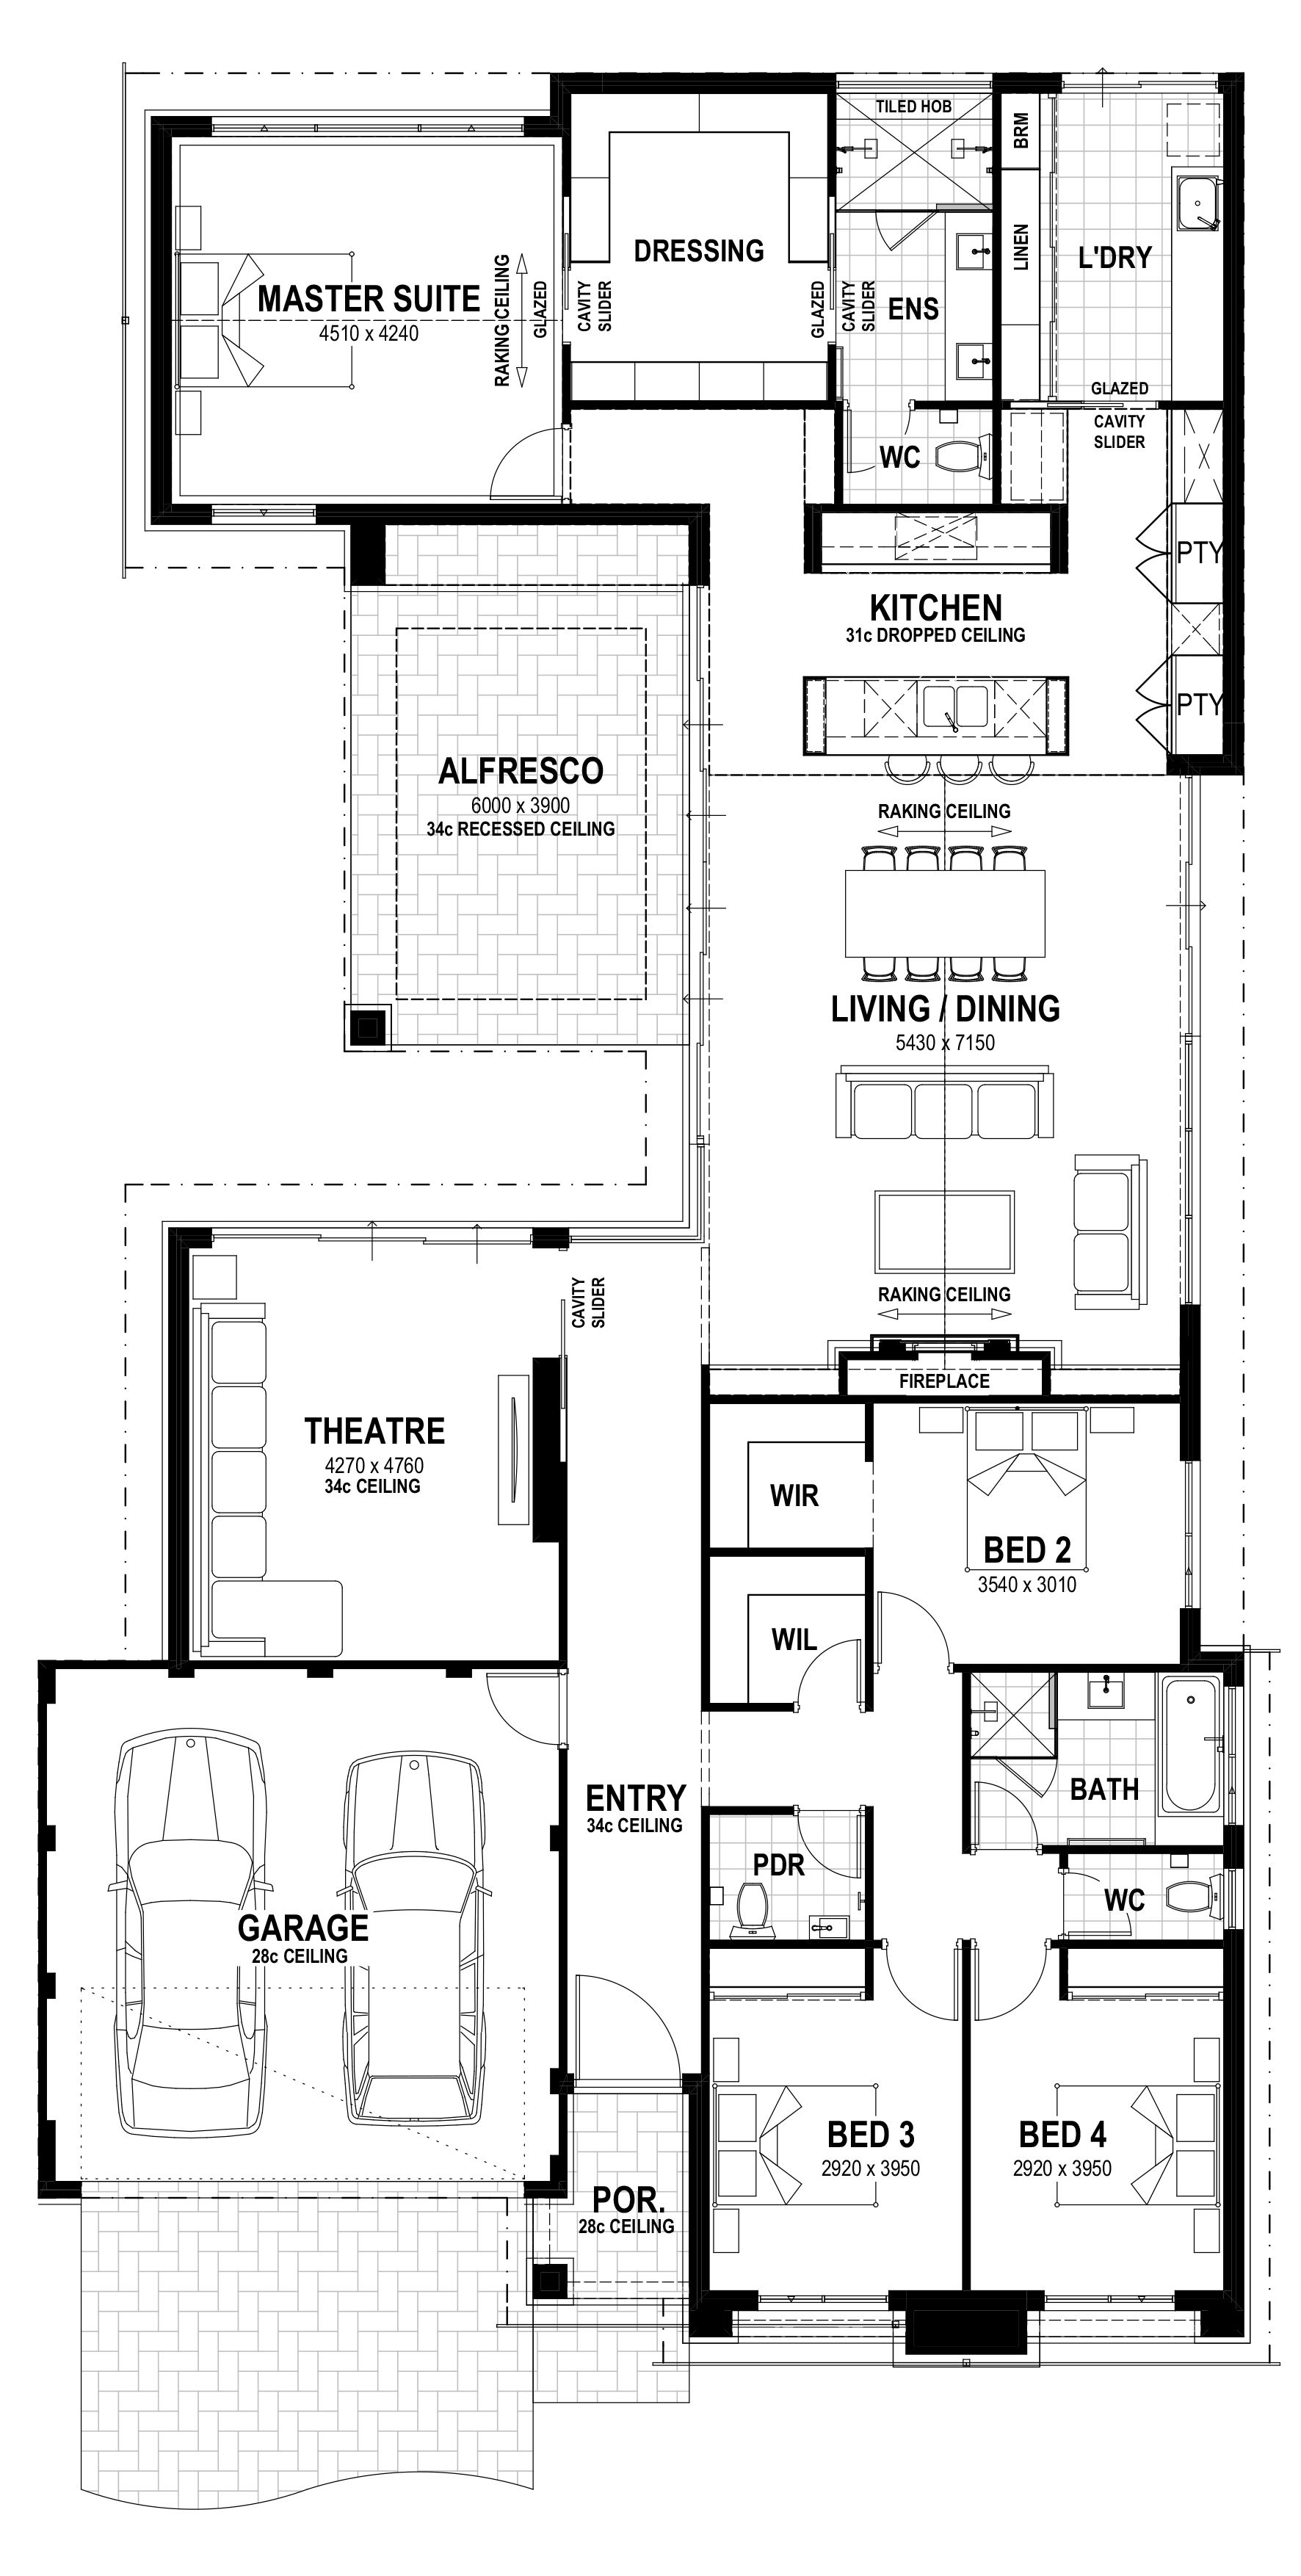 Manor Lot 15 Pallium Way Floorplan Floor Plan Design New House Plans Home Design Floor Plans